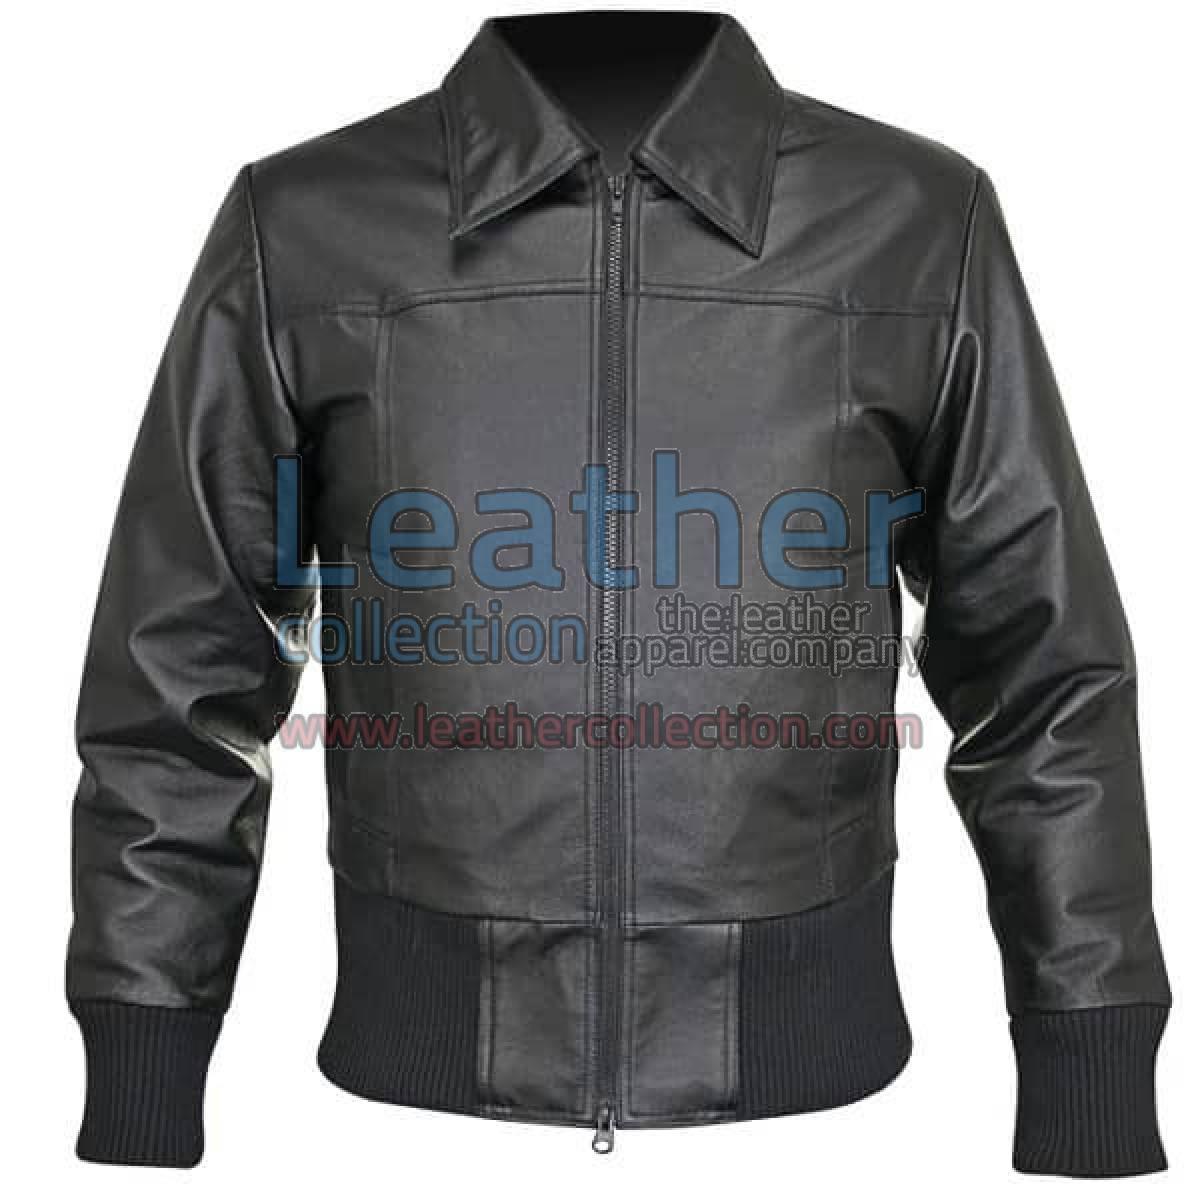 Rib Knit Waist Length Jacket Of Leather